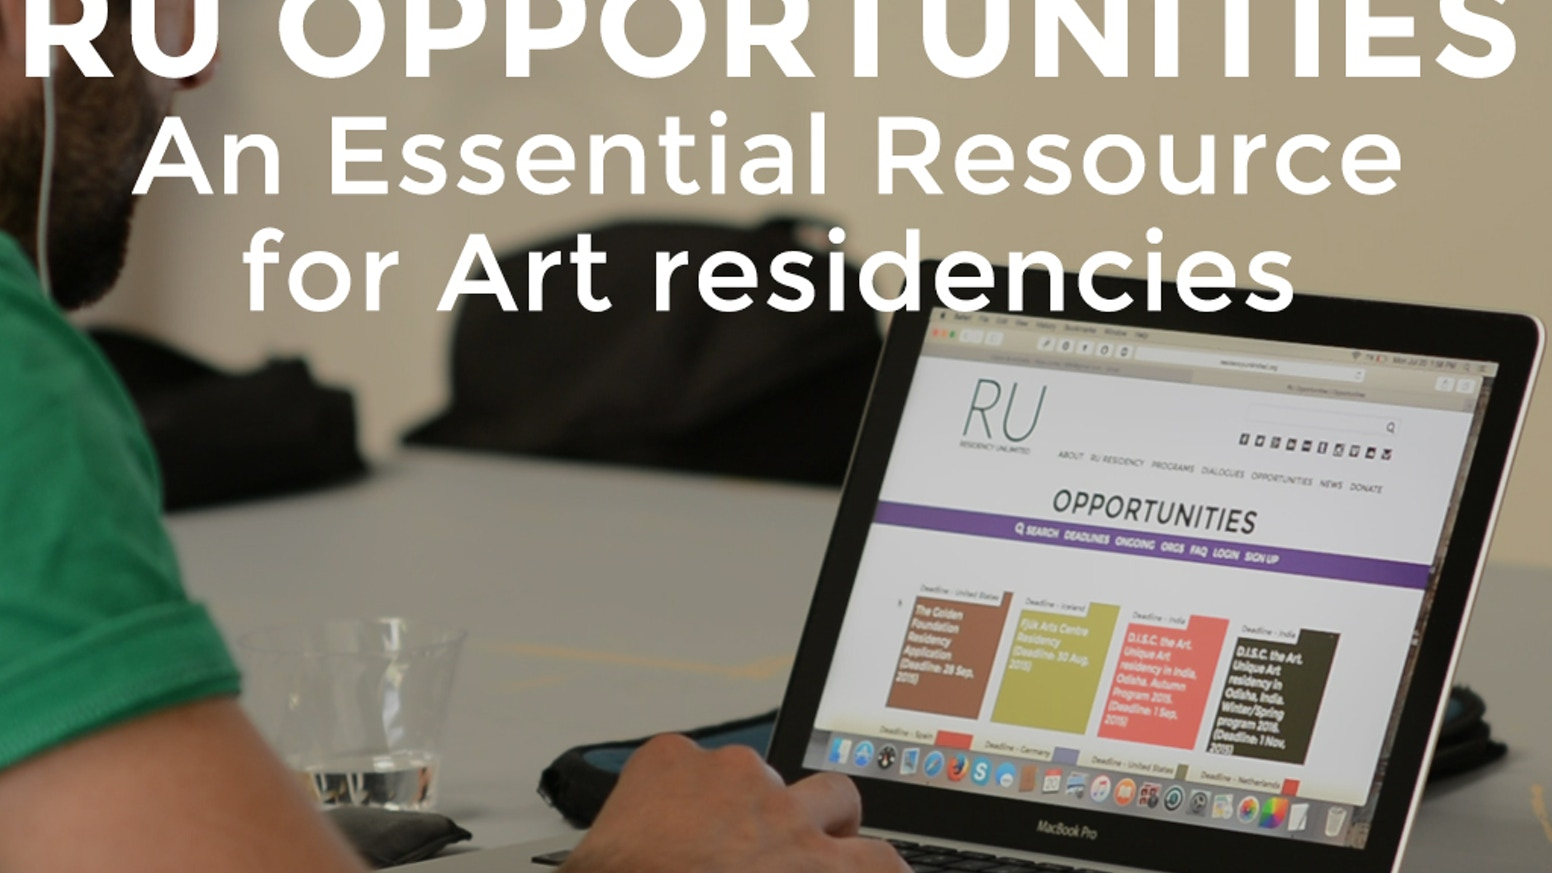 RU Opportunities is a free online listing service that delivers up-to-date information about residencies for artists around the globe.